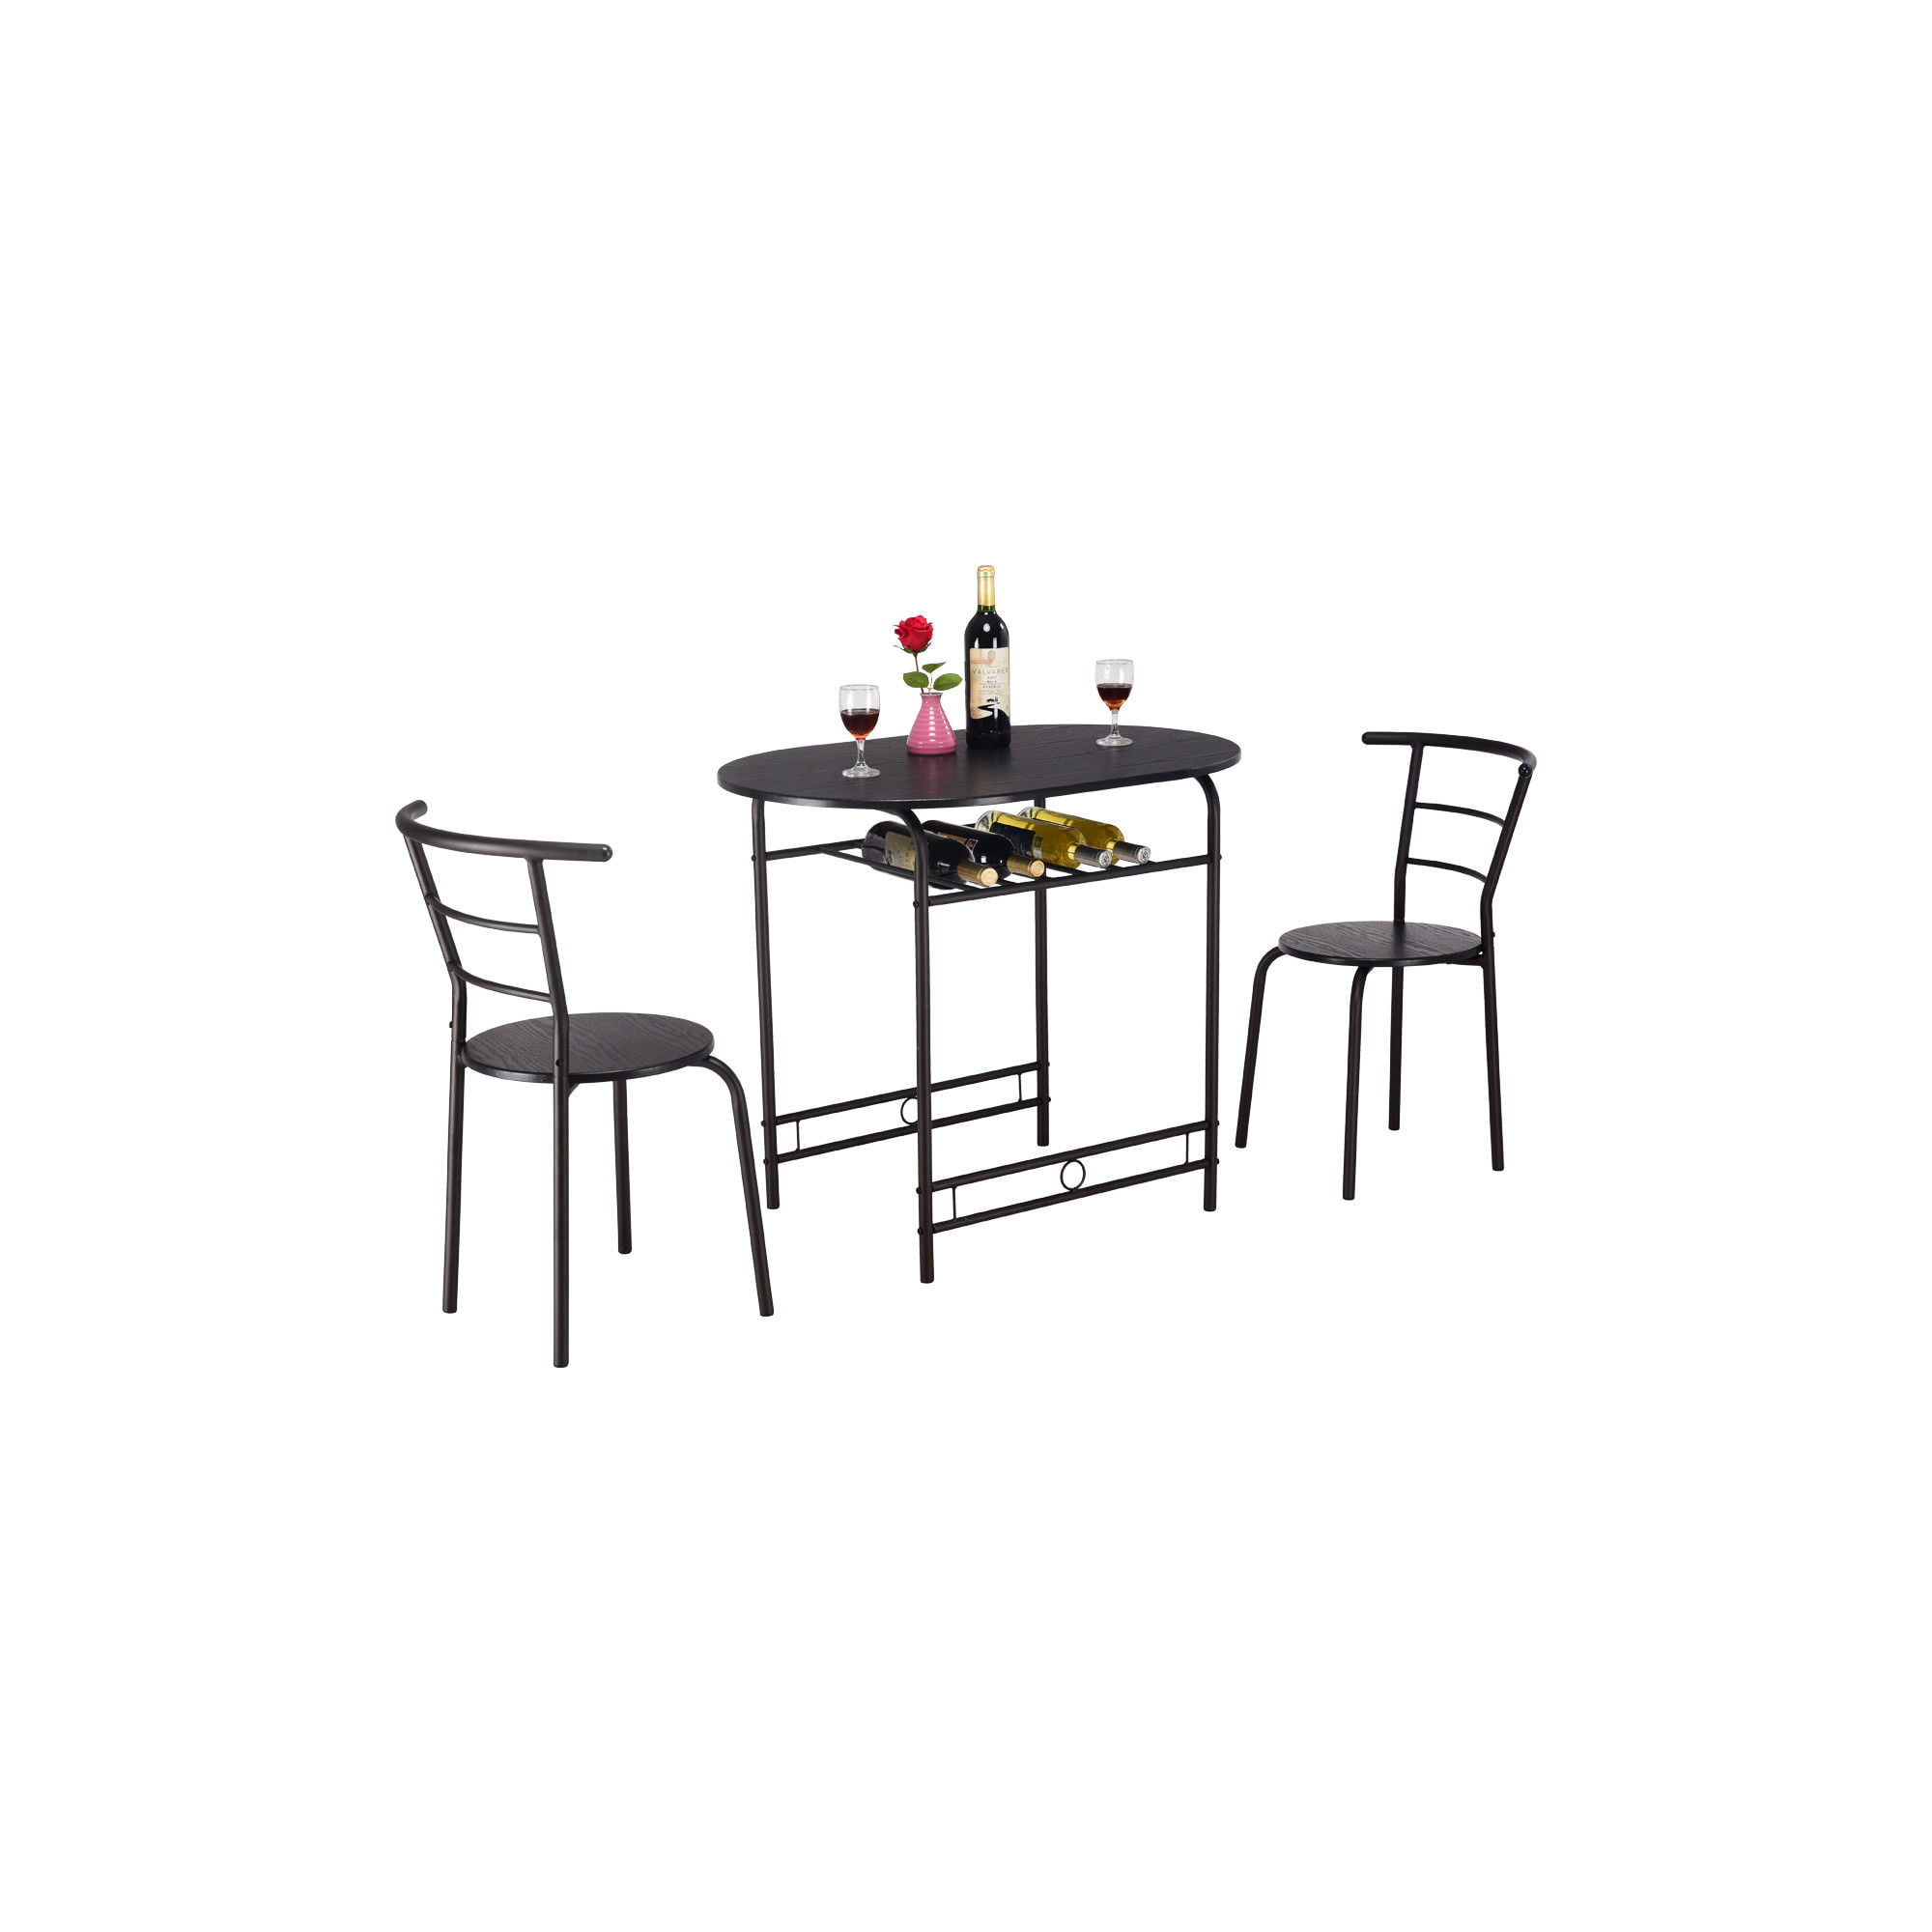 At Home Kitchen Chairs.3pcs Dining Set Table And 2 Chairs Home Kitchen Breakfast Bistro Pub Furniture